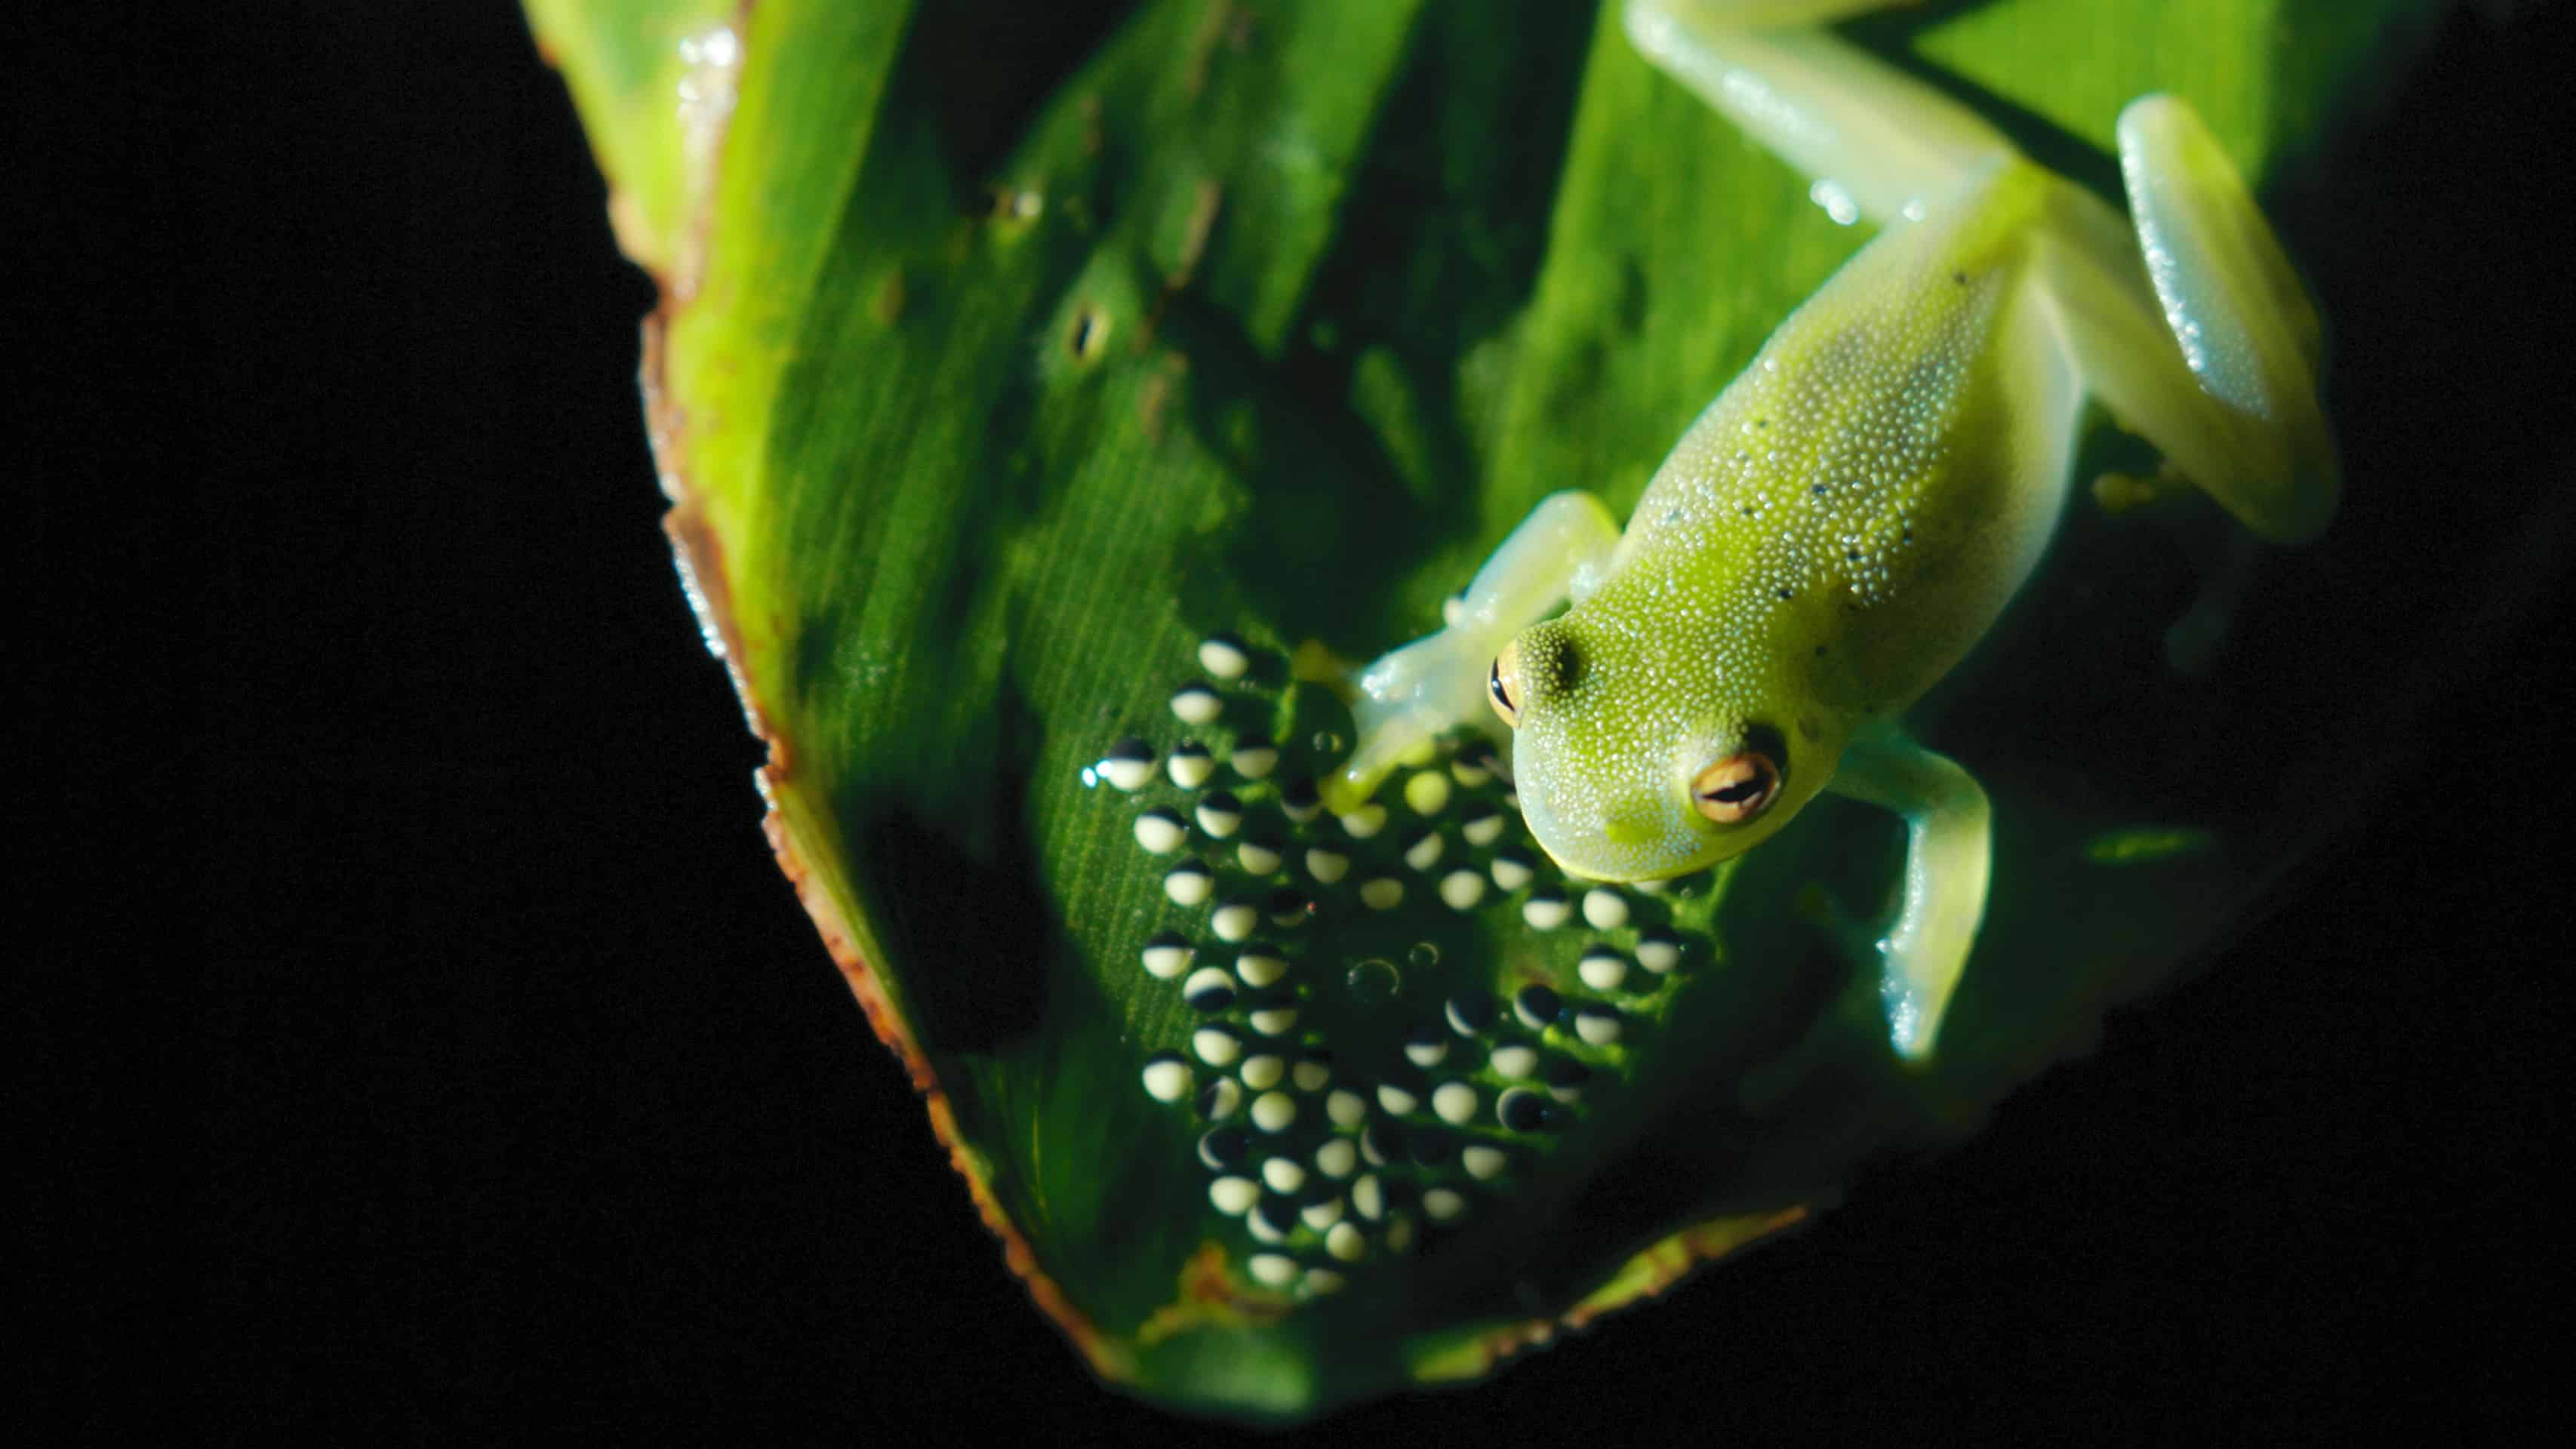 04_SOTR_GLASS_FROGS_12